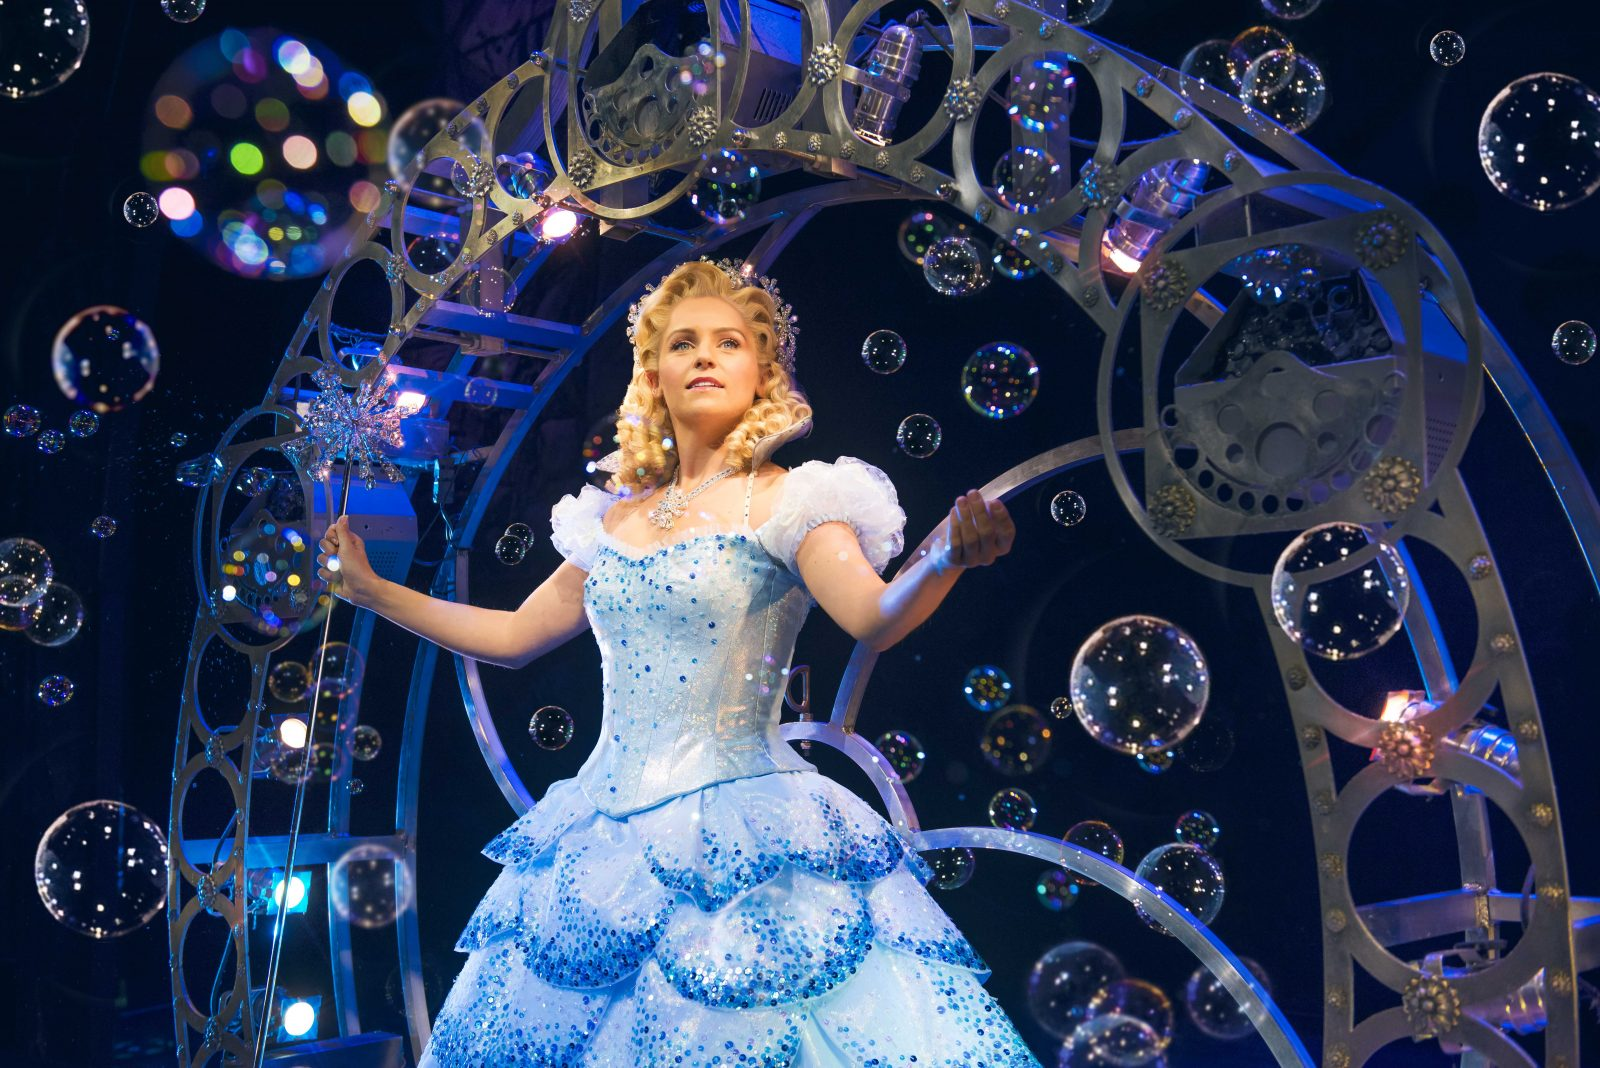 helen woolf as glinda, wearing a blue sparkly ballgown holding a wand, stood in her bubble